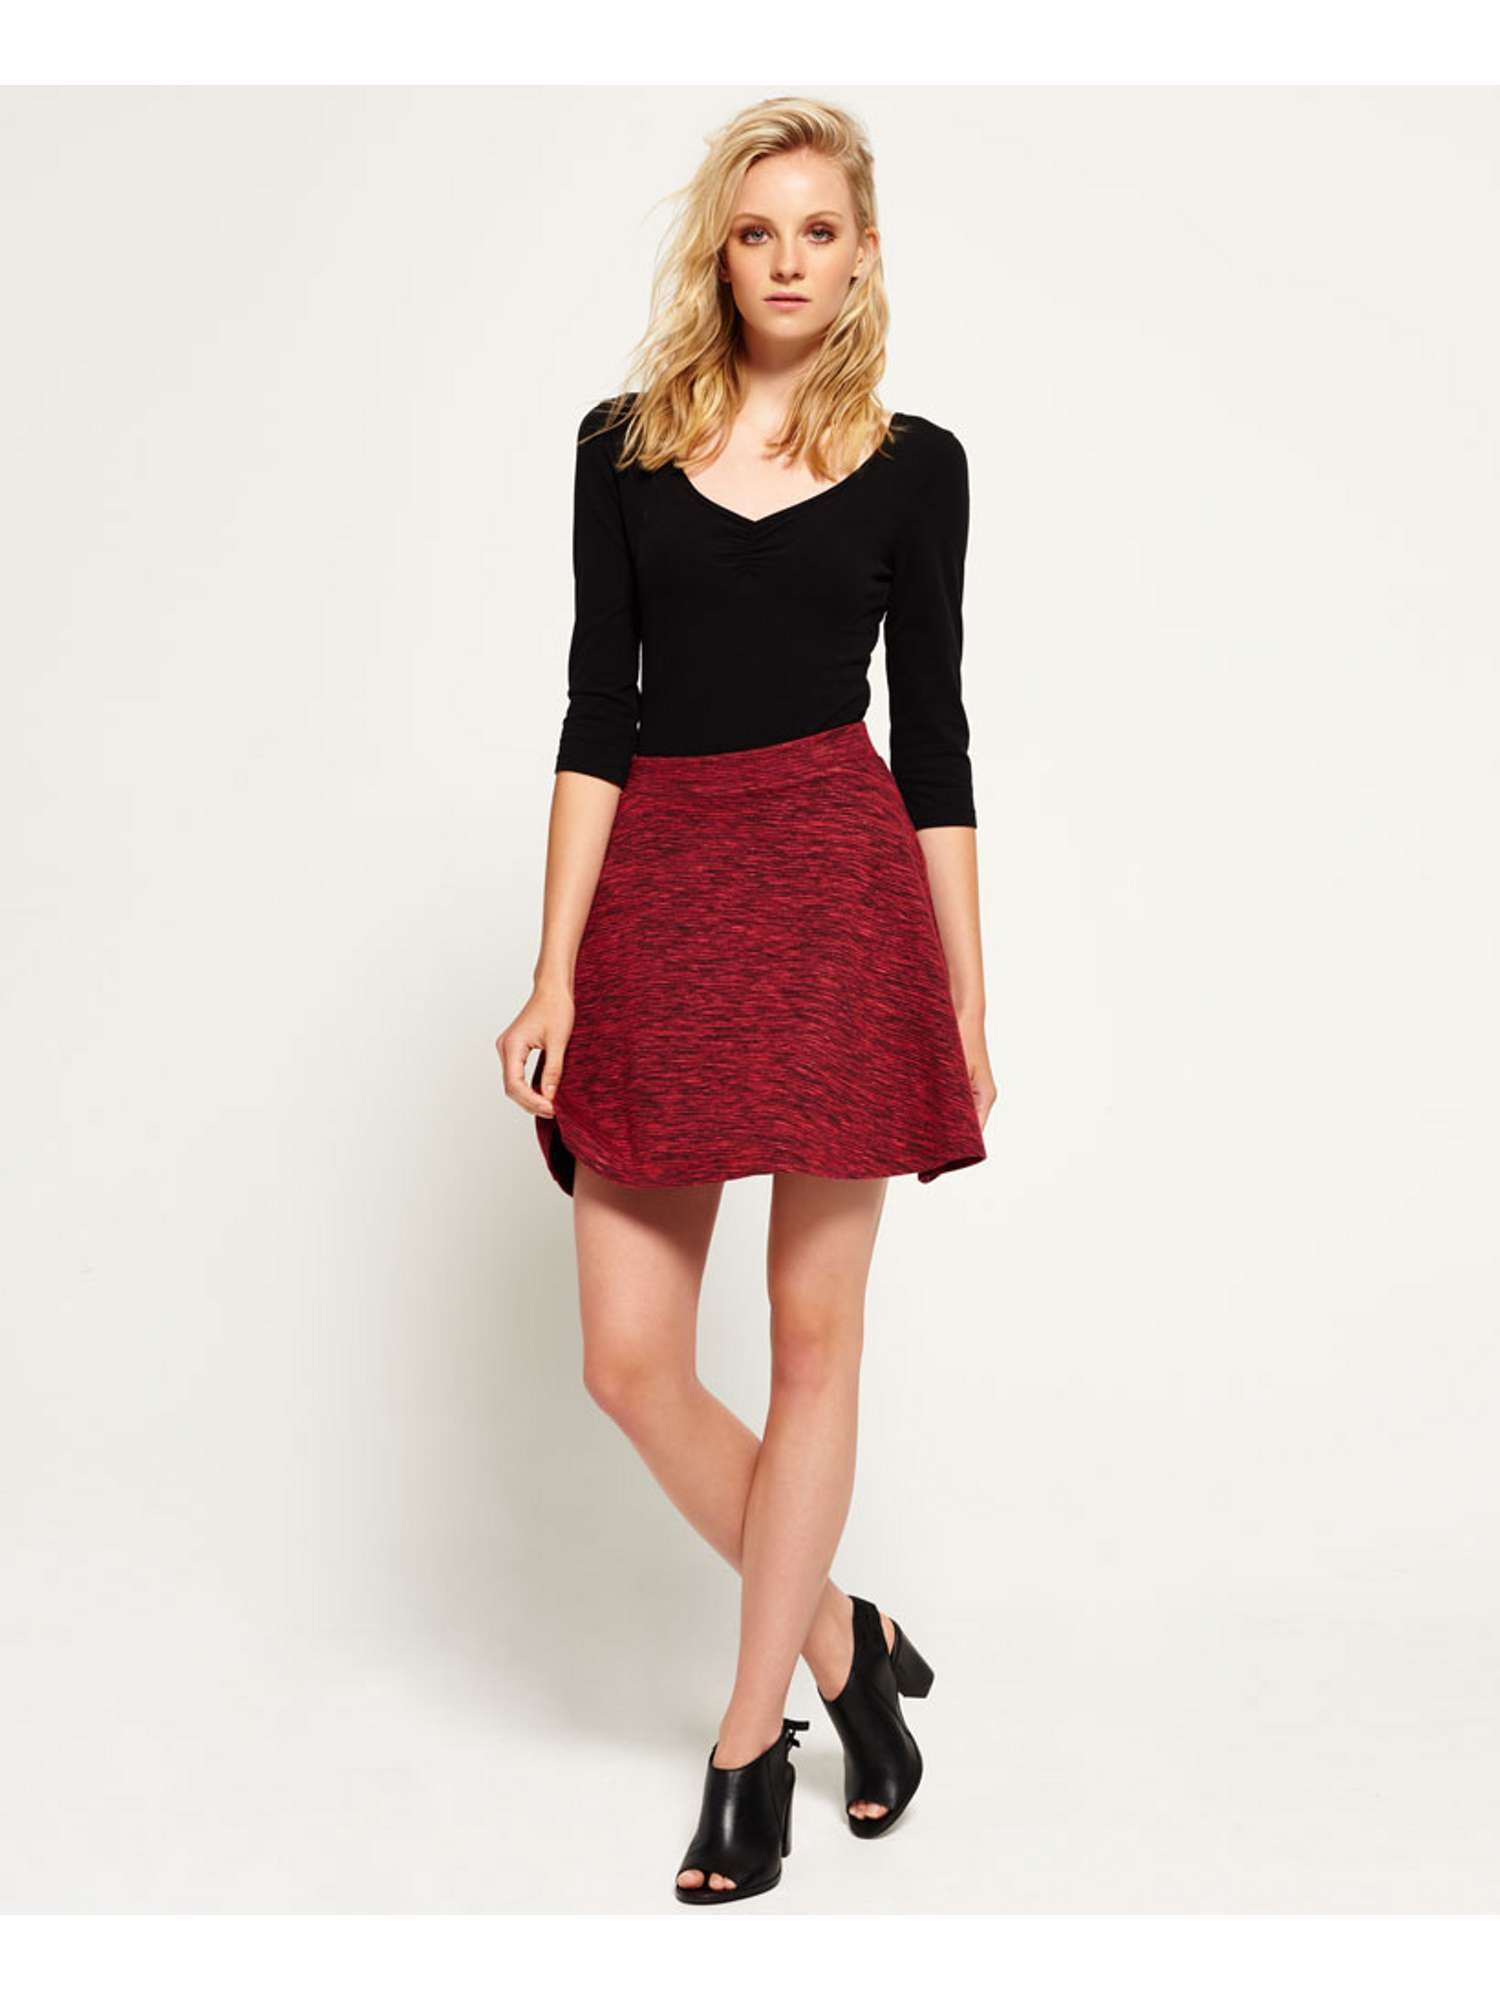 Skirt Augusta Superdry Rydell Augusta Superdry xxY7qfB